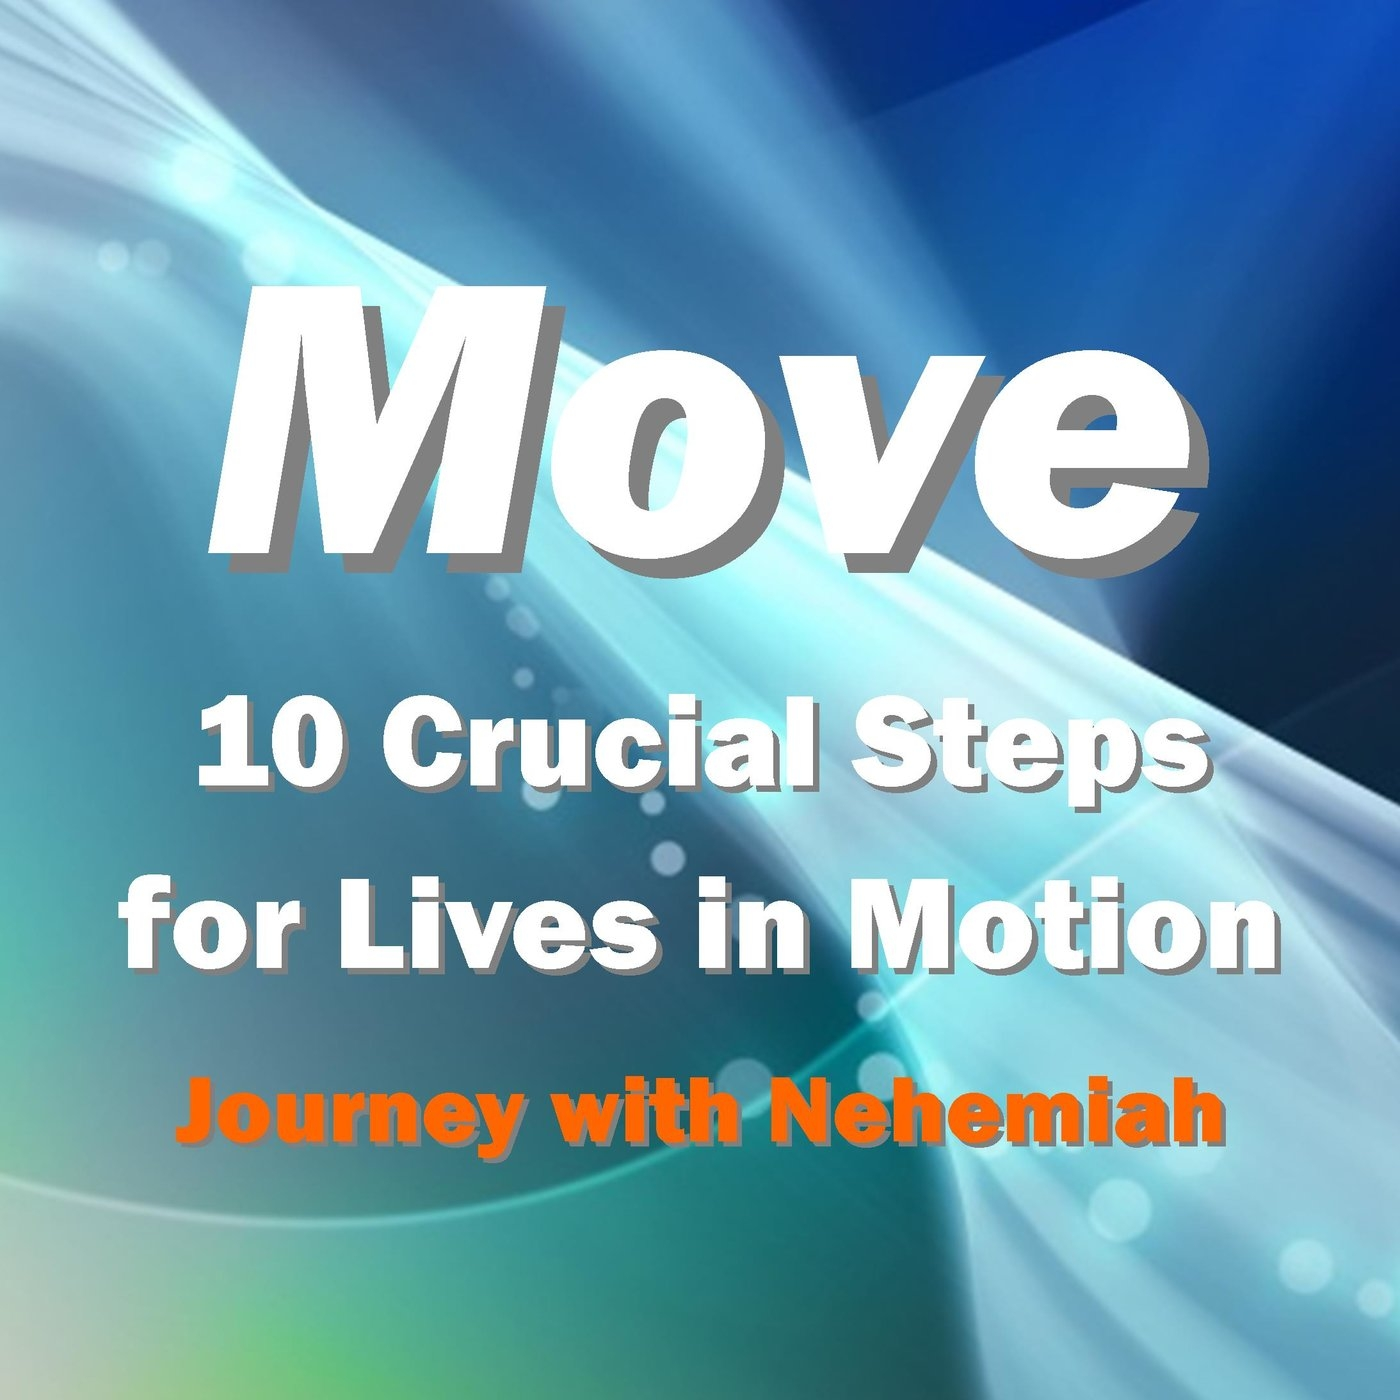 MOVE: The Crucial Steps for Lives in Motion